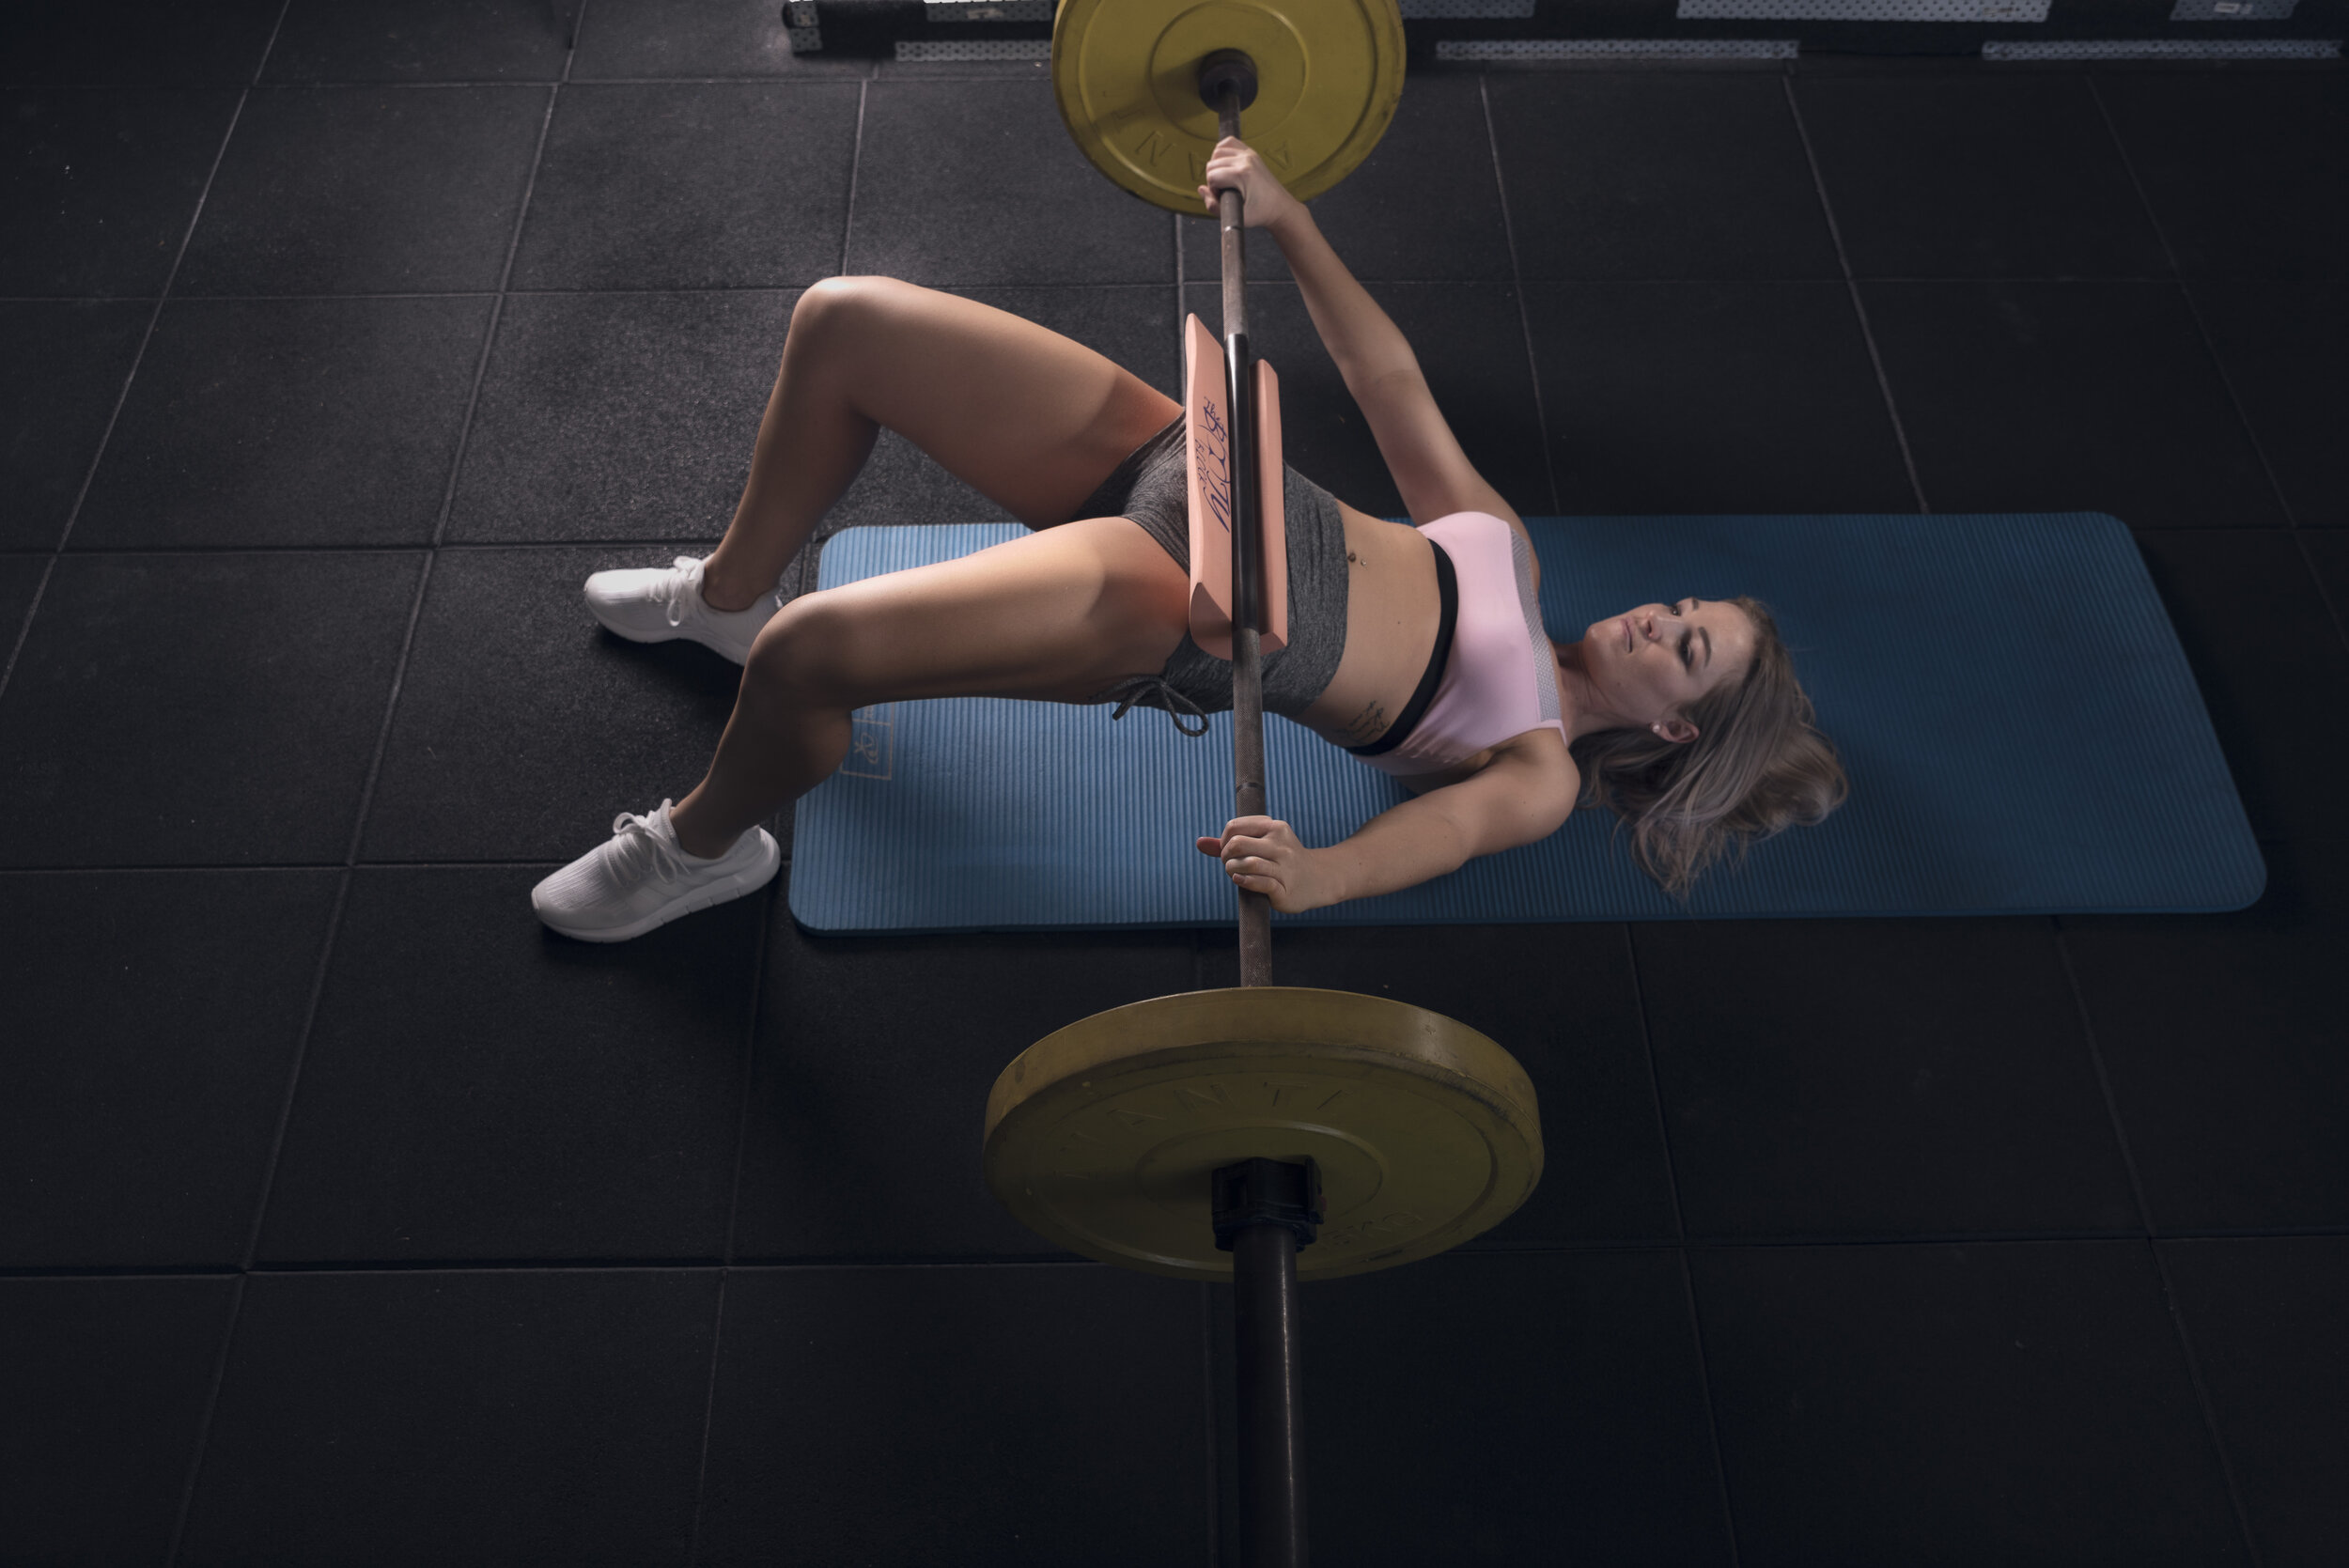 booty block - To assist in better glute development